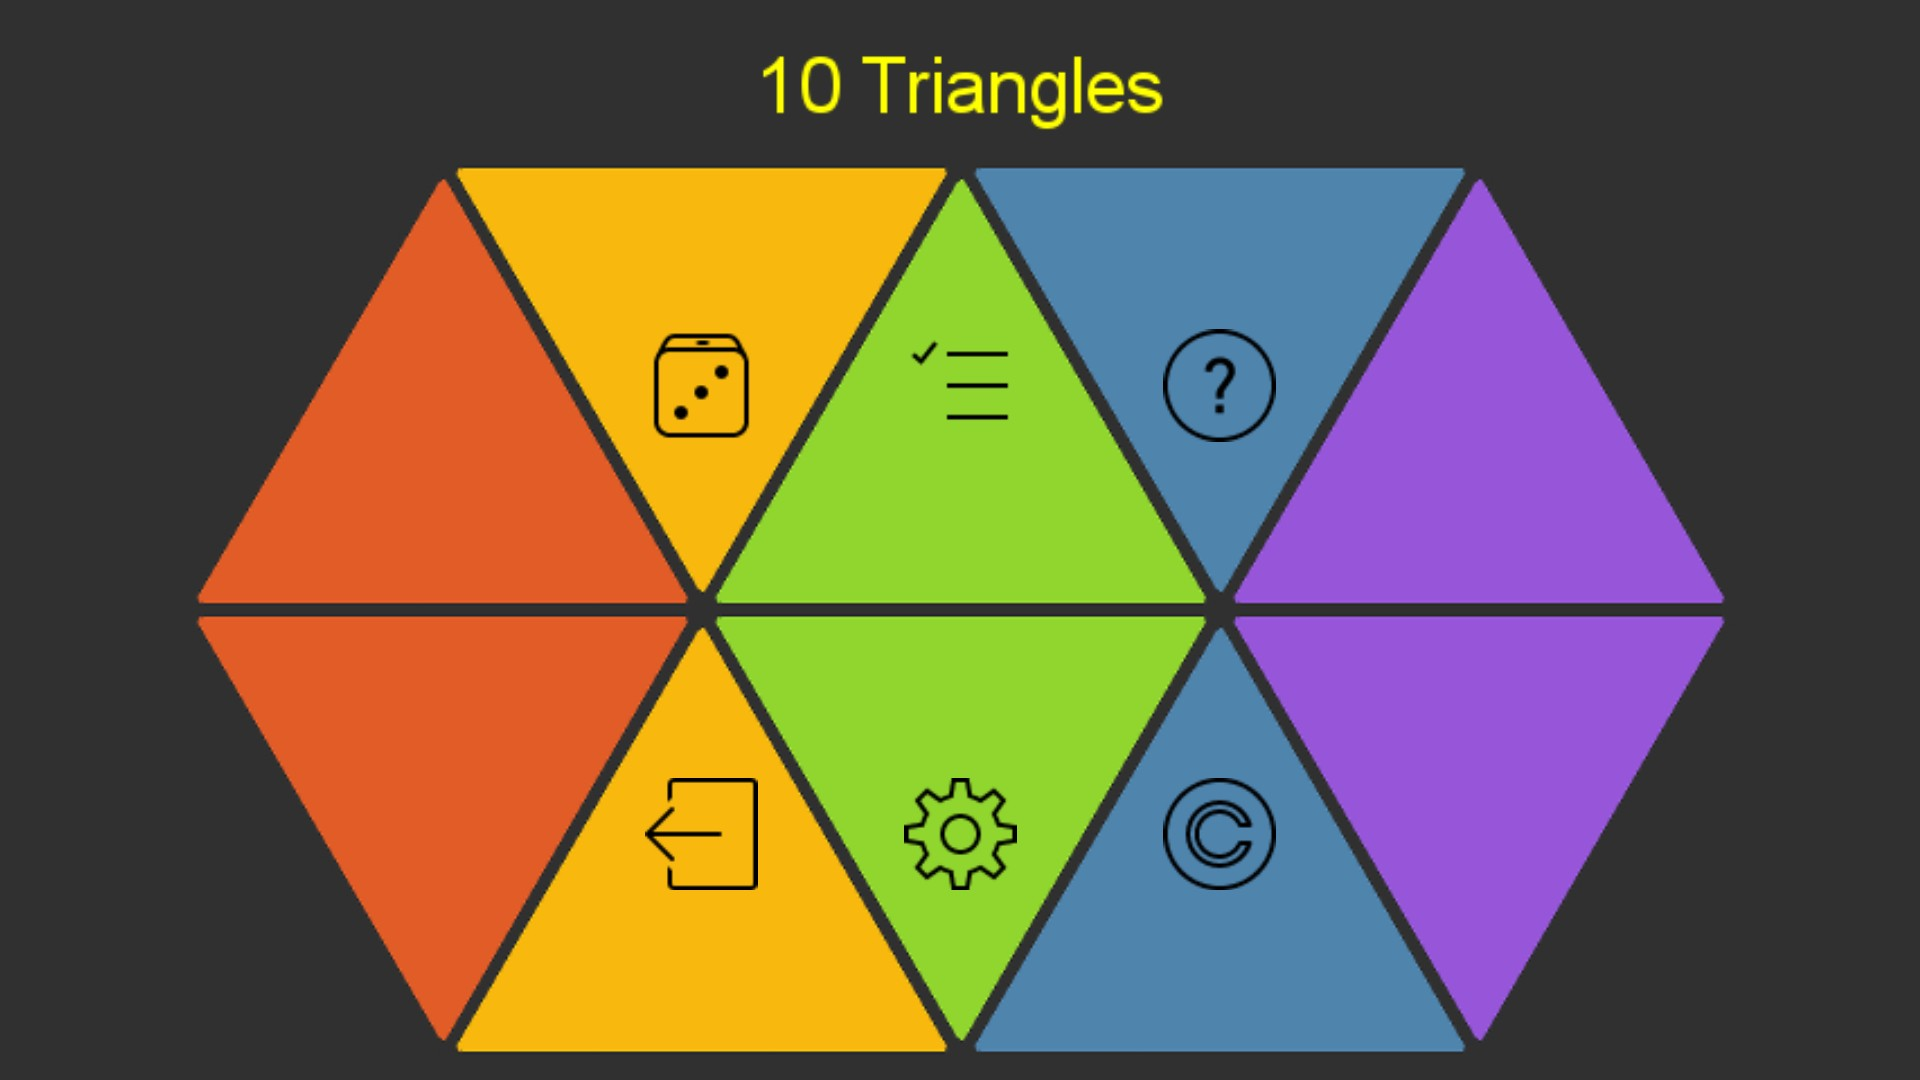 Ten Triangles